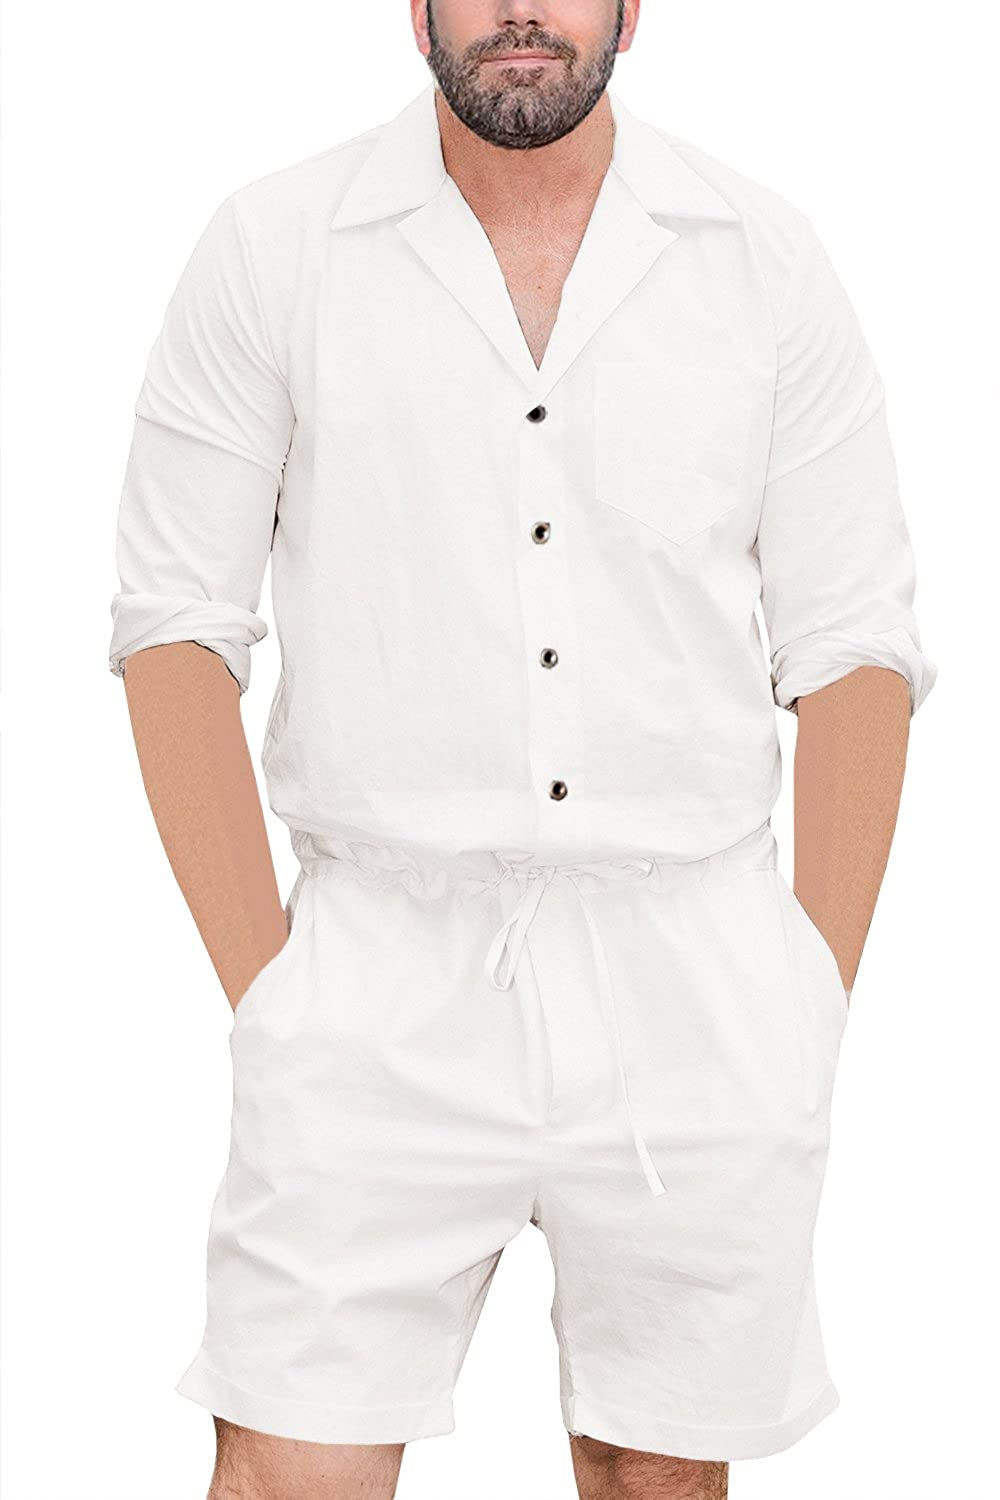 Makkrom Mens Romper One Piece Button Up Short Sleeve Jumpsuit Shorts Casual Solid Overall